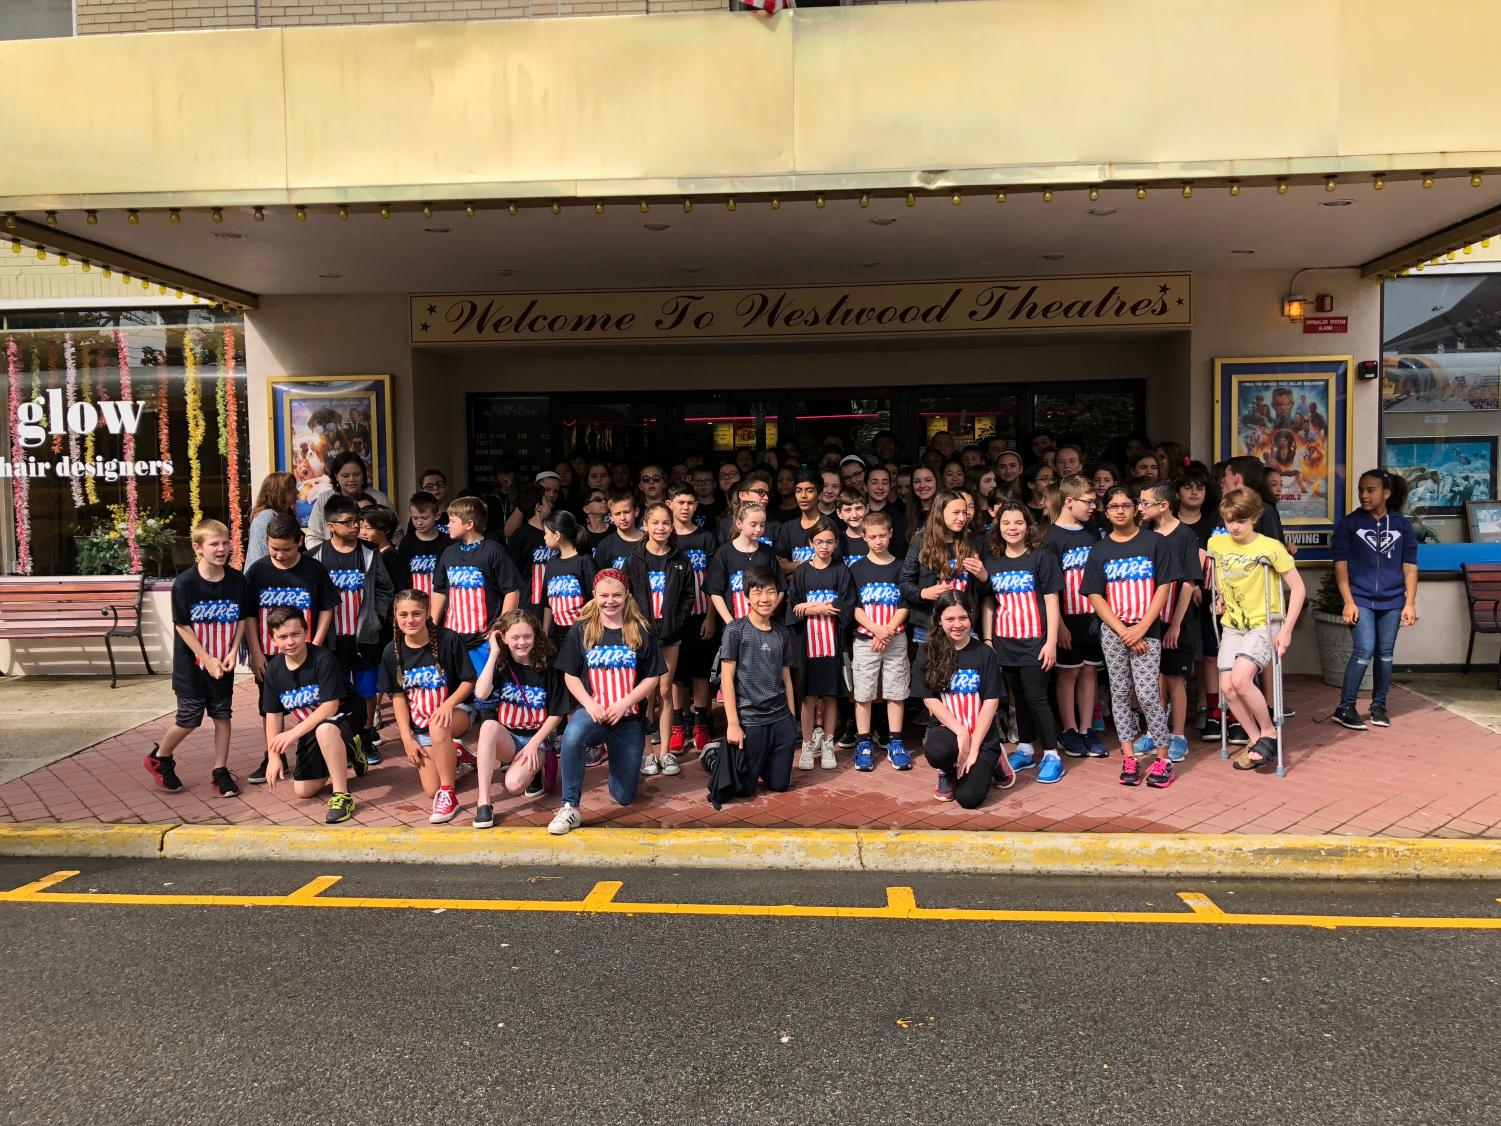 Sixth graders attend a movie at the theater in Westwood, NJ, as their final D.A.R.E. activity. Each students is wearing a special D.A.R.E. t-shirt.